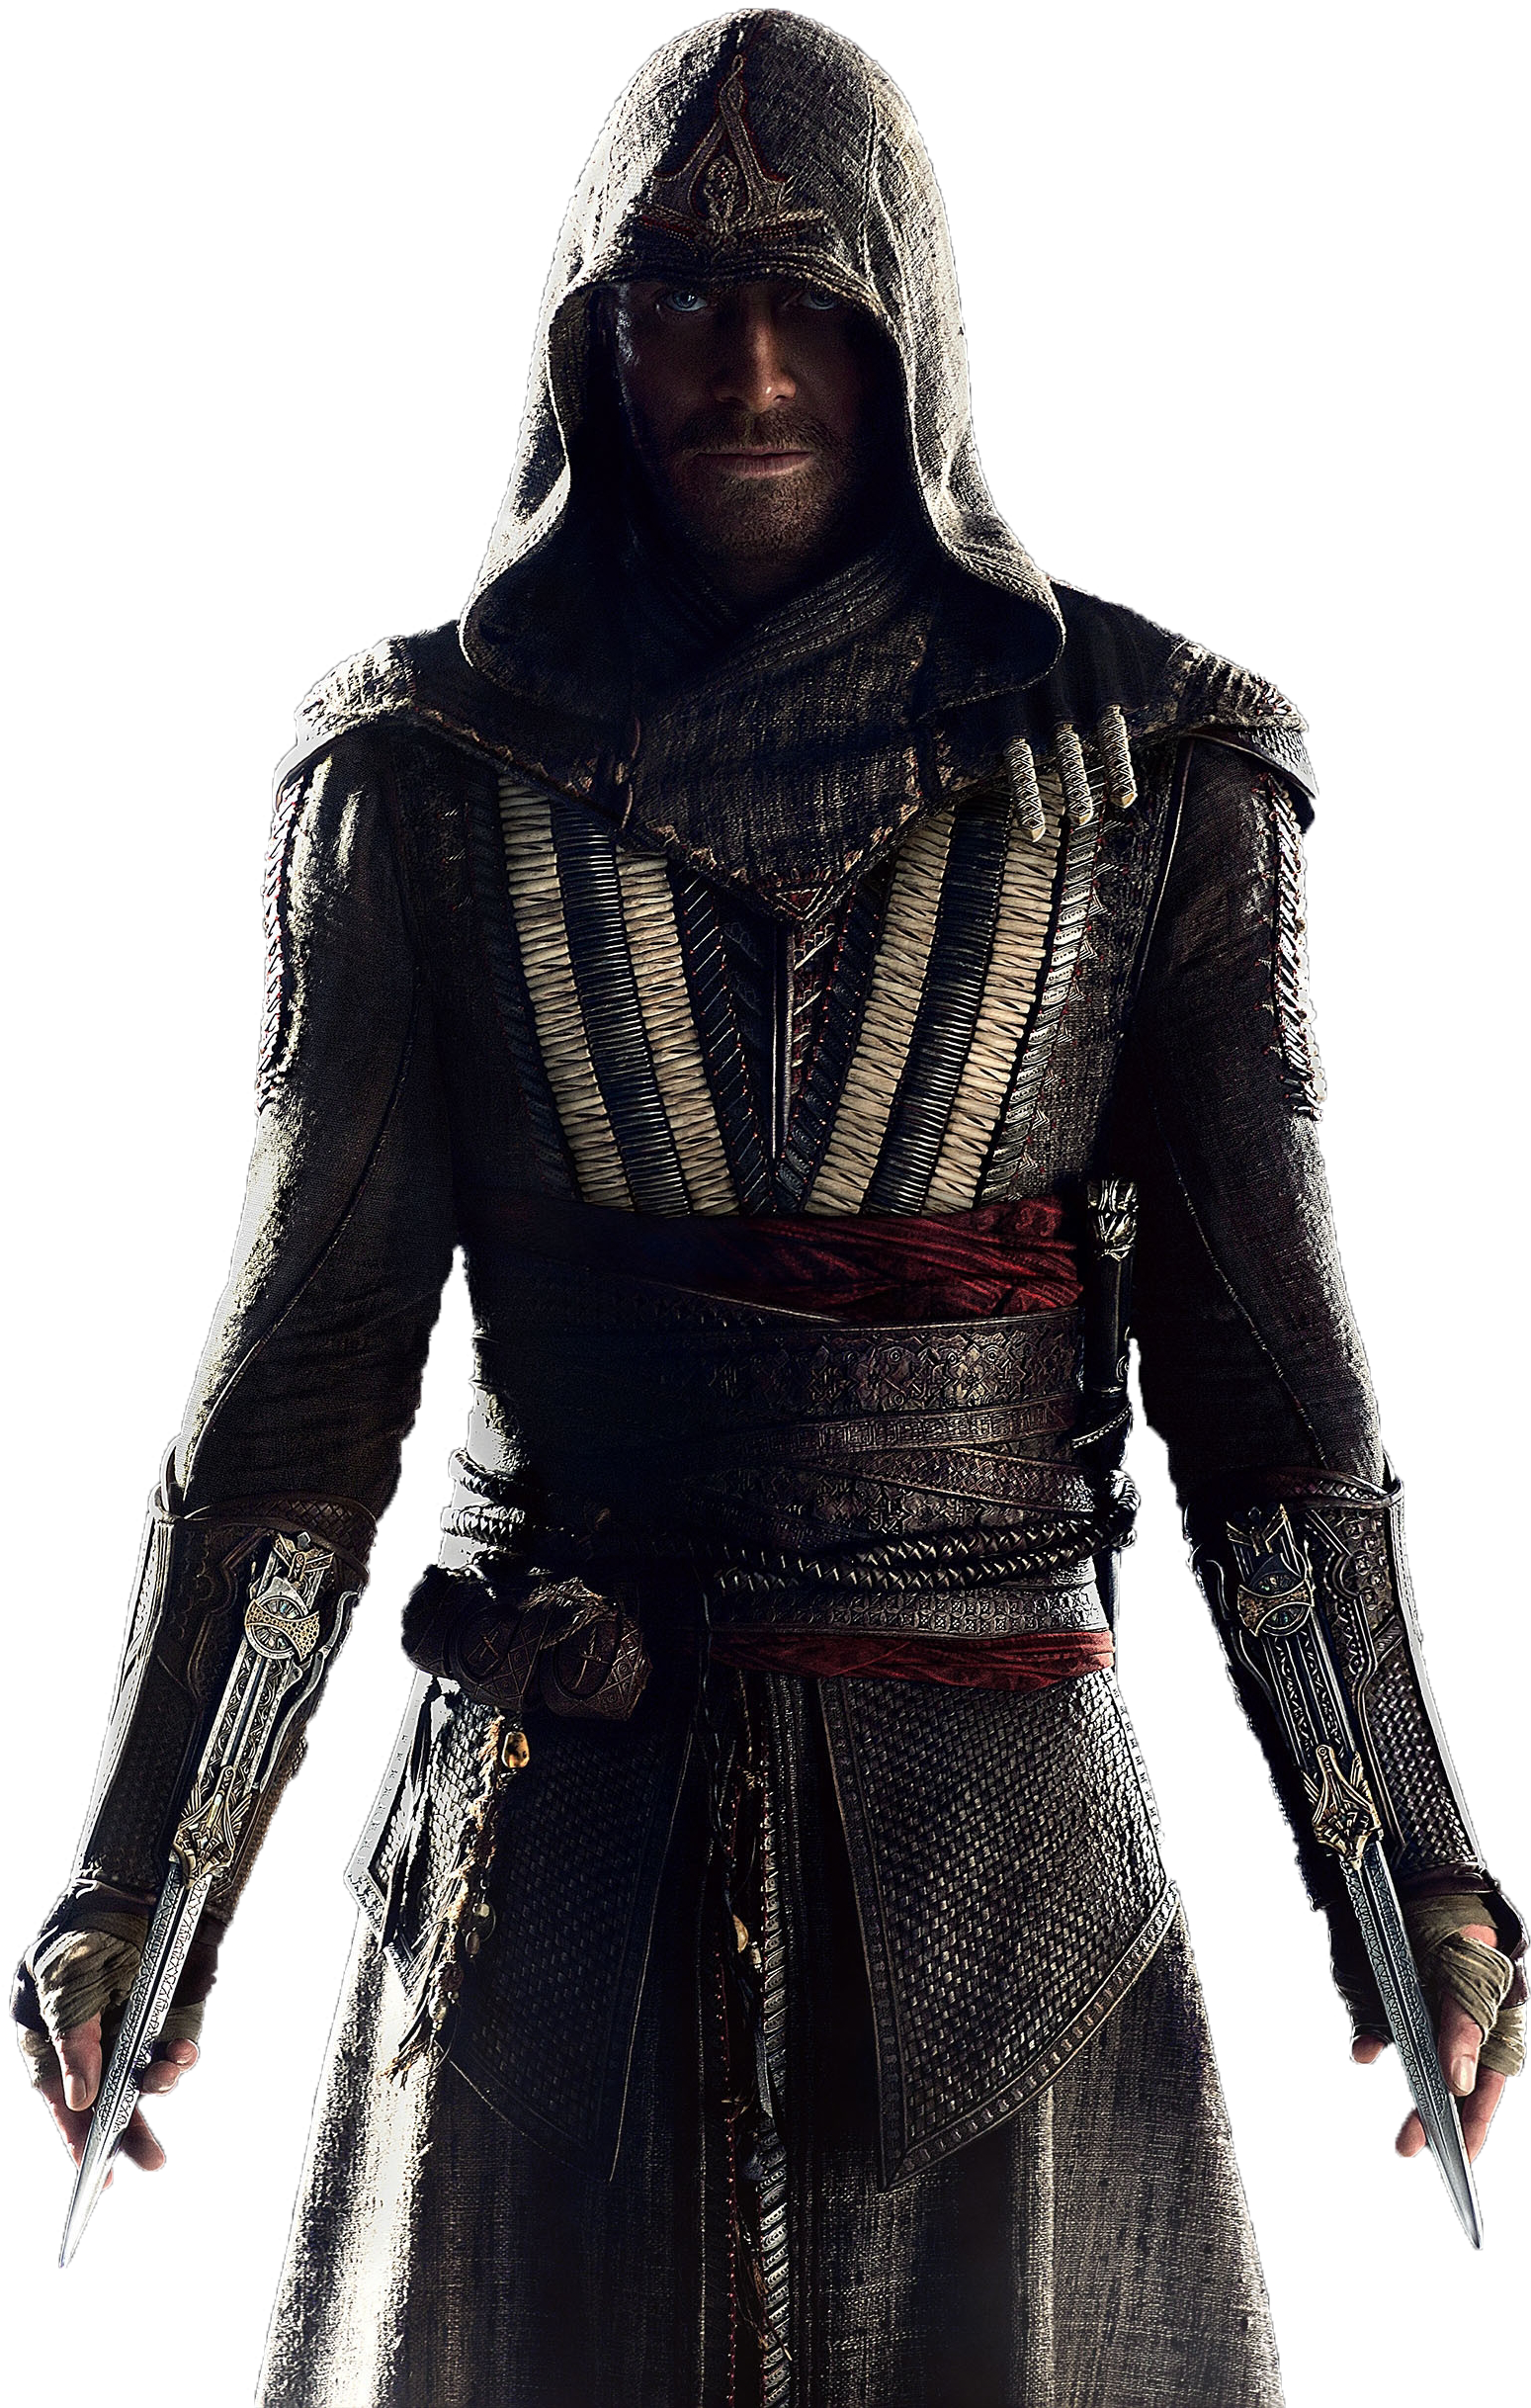 Download Ac Aguilar Cropped Assassin S Creed Movie Full Size